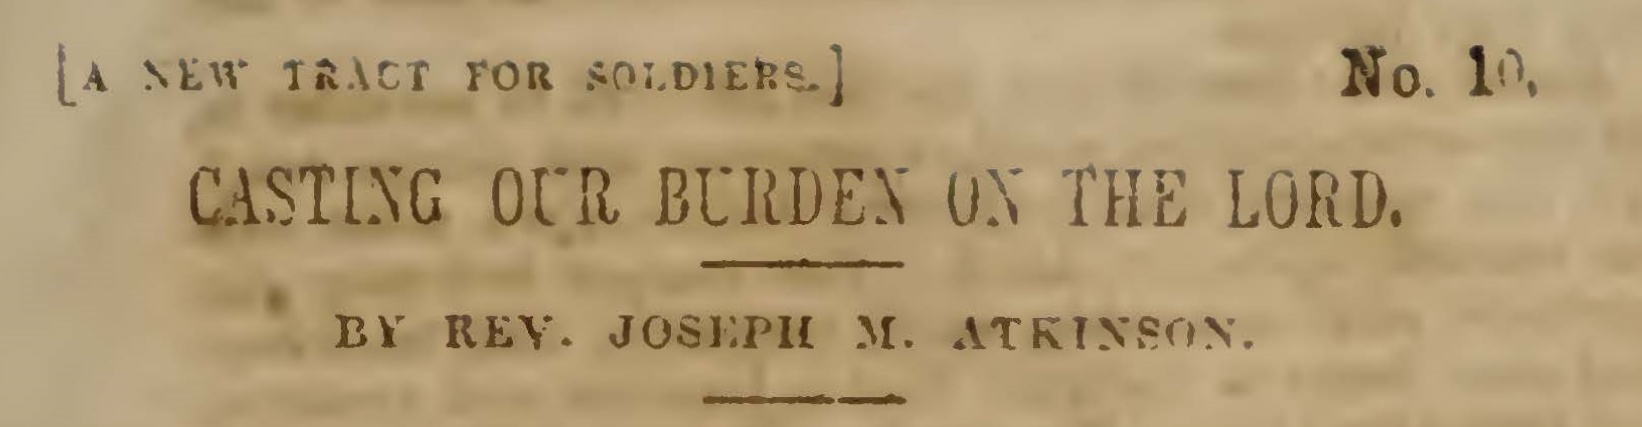 Atkinson, Joseph Mayo, Casting Our Burden on the Lord Title Page.jpg